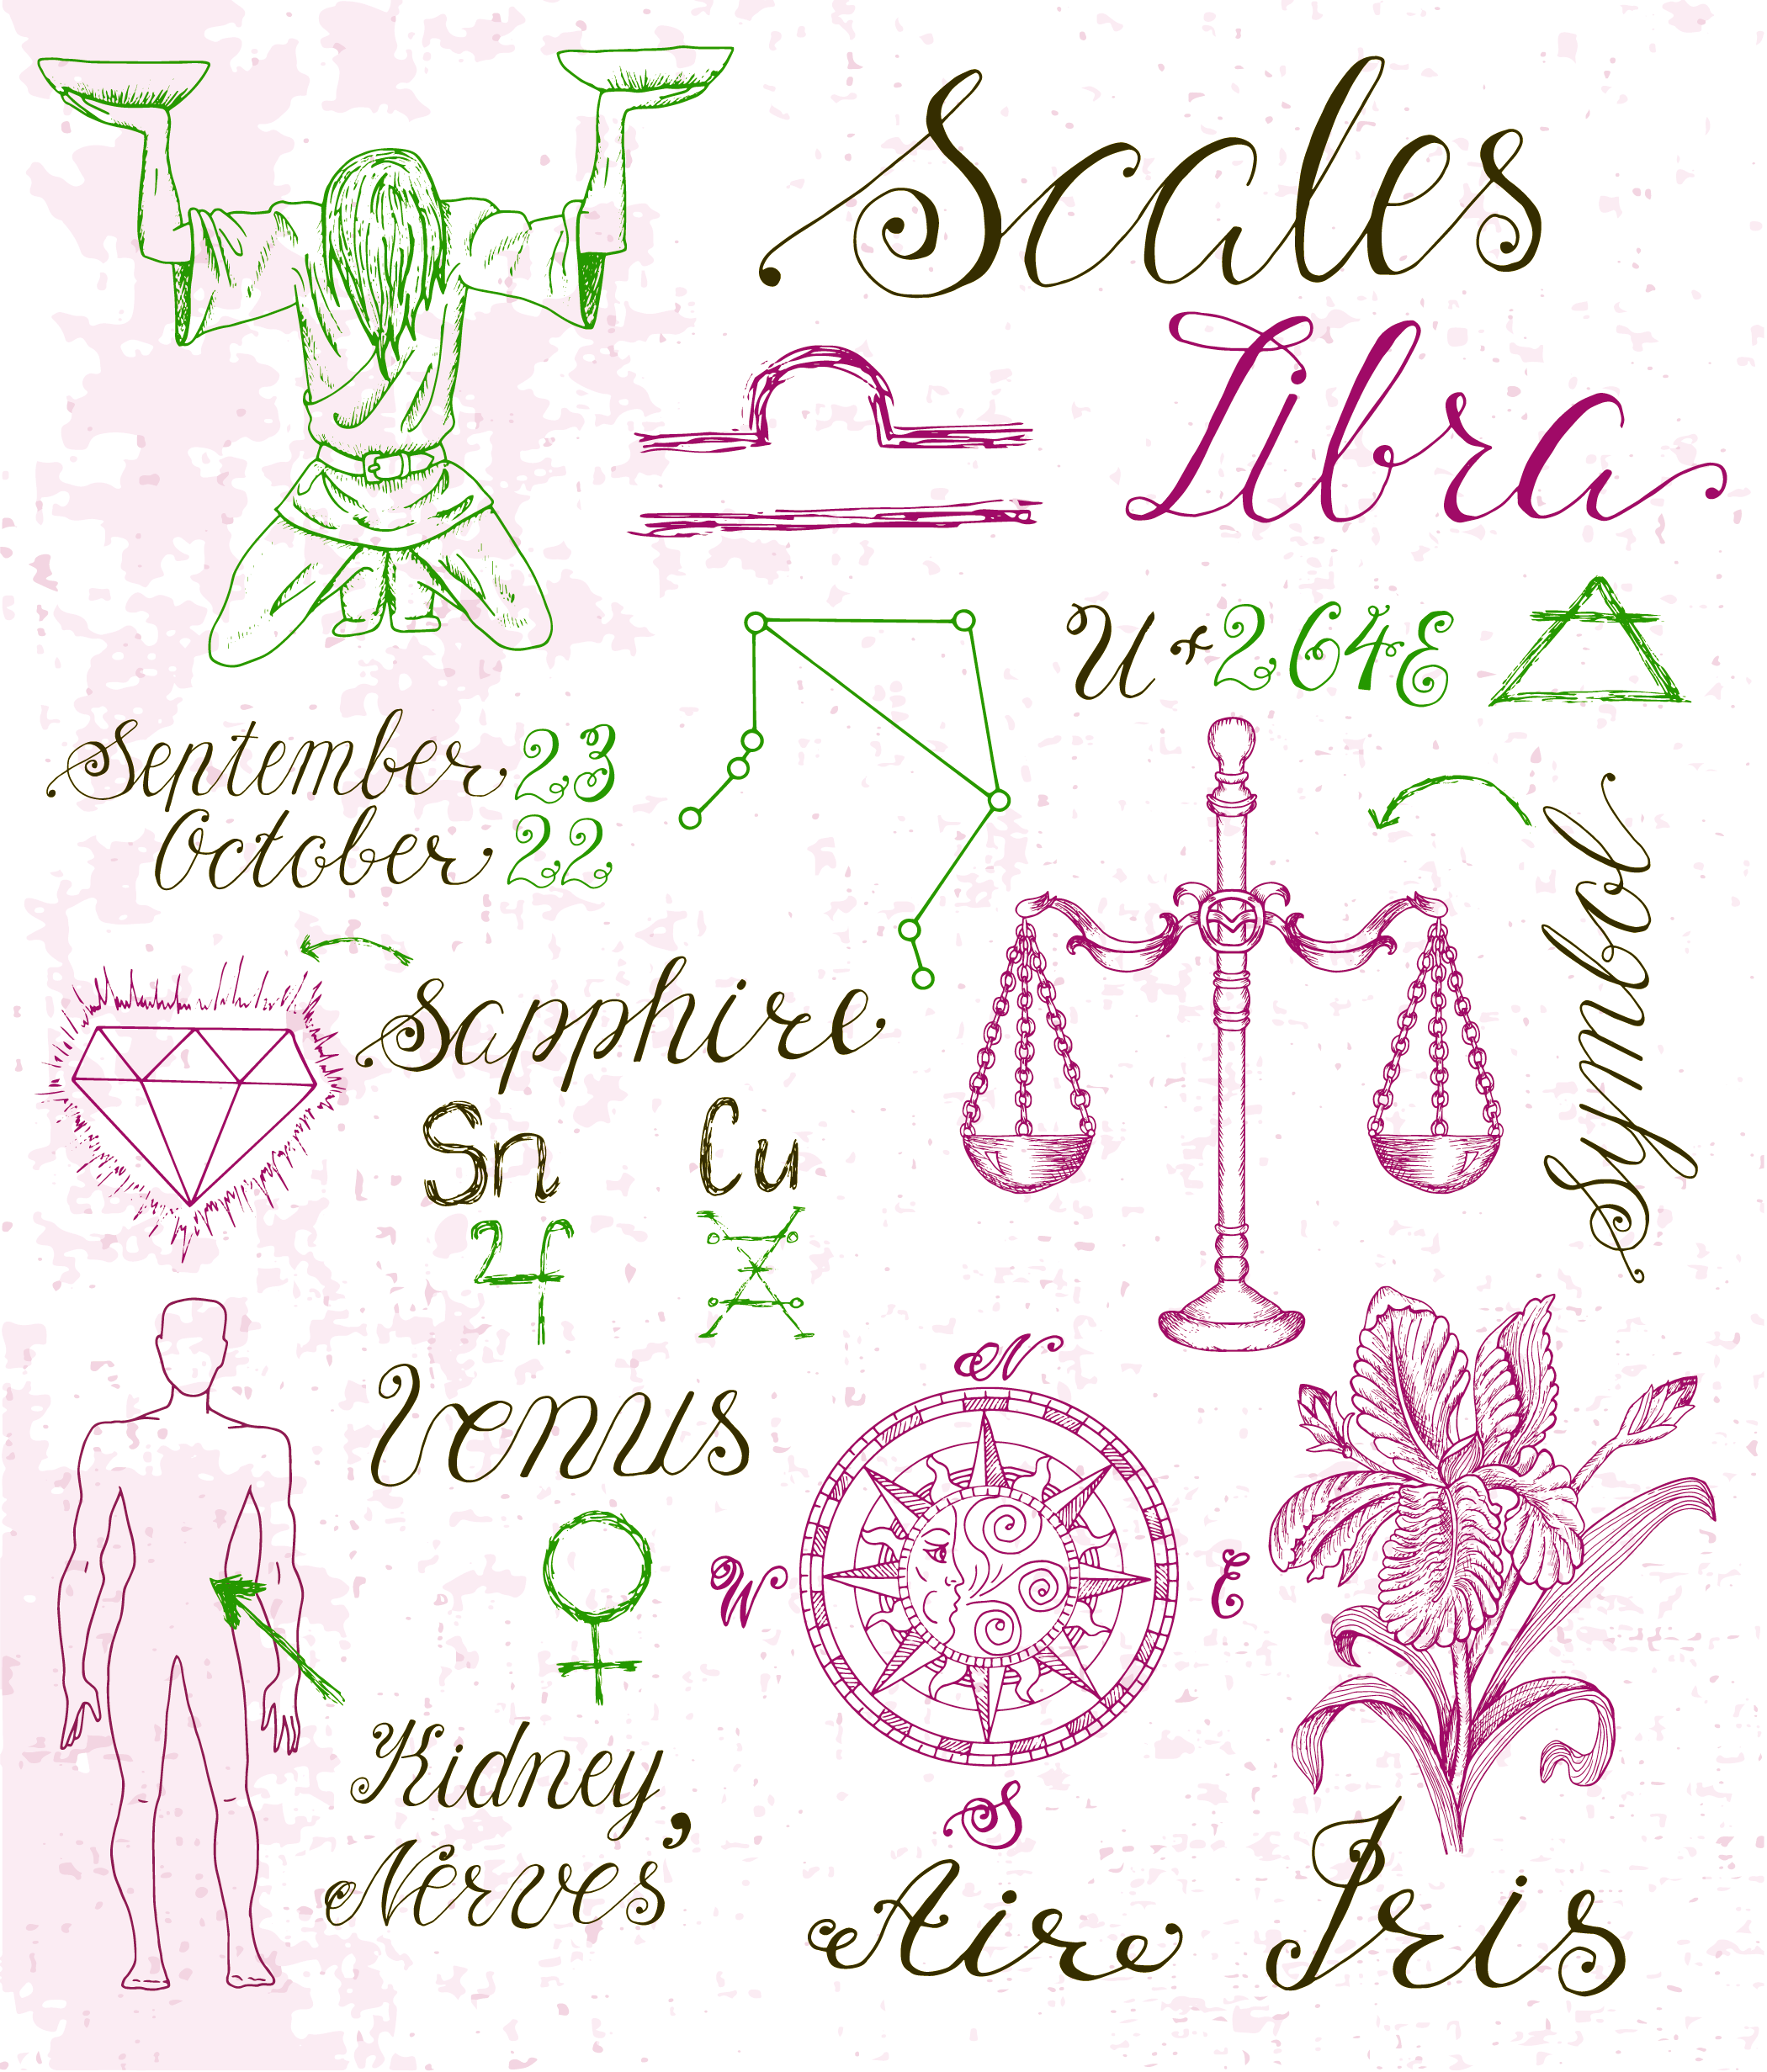 Astrology Zodiac Sign: Libra